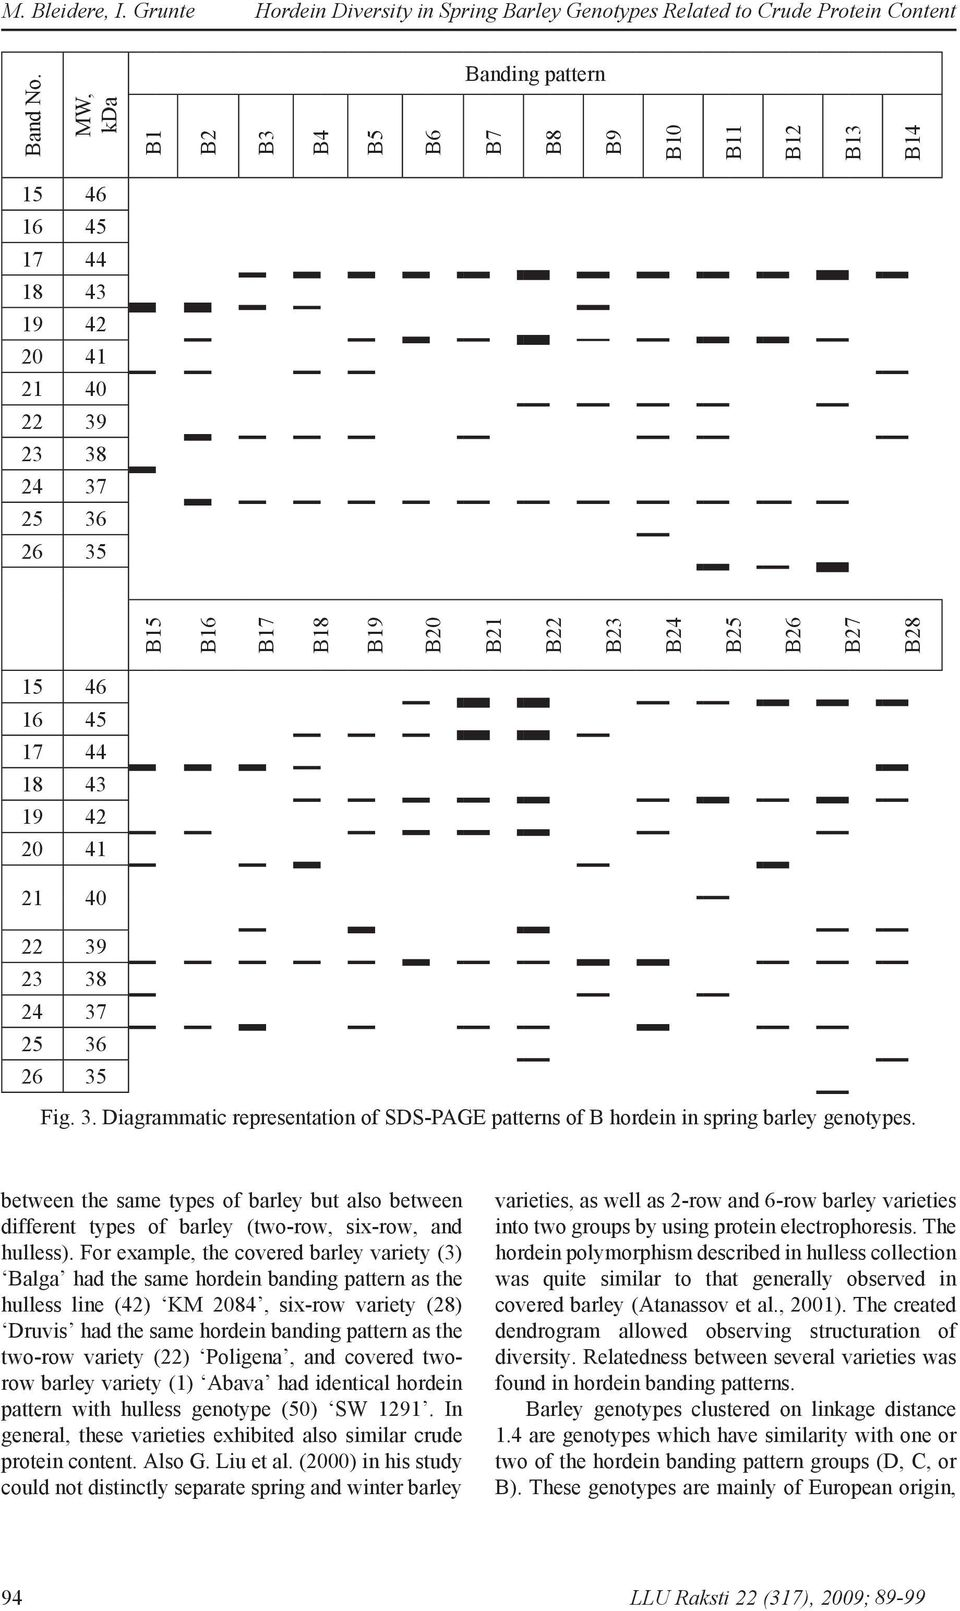 15 46 16 45 17 44 18 43 19 42 20 41 21 40 22 39 23 38 24 37 25 36 26 35 Fig. 3. Diagrammatic representation of SDS-PAGE patterns of B hordein in spring barley genotypes.